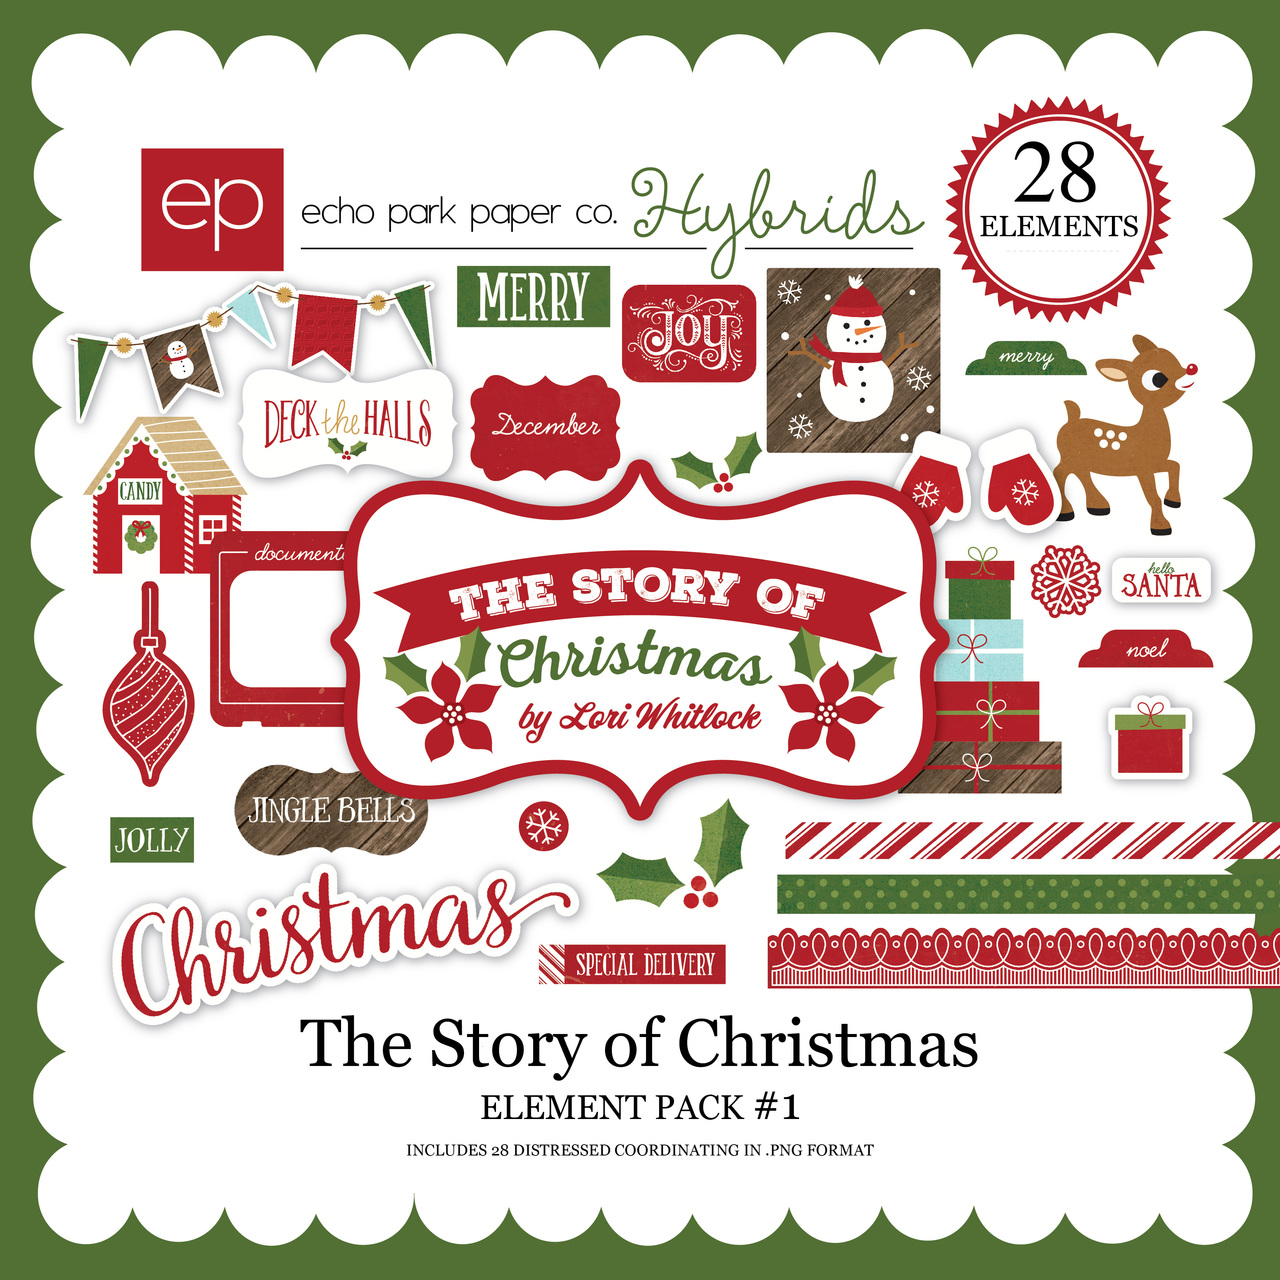 The Story of Christmas Element Pack 1